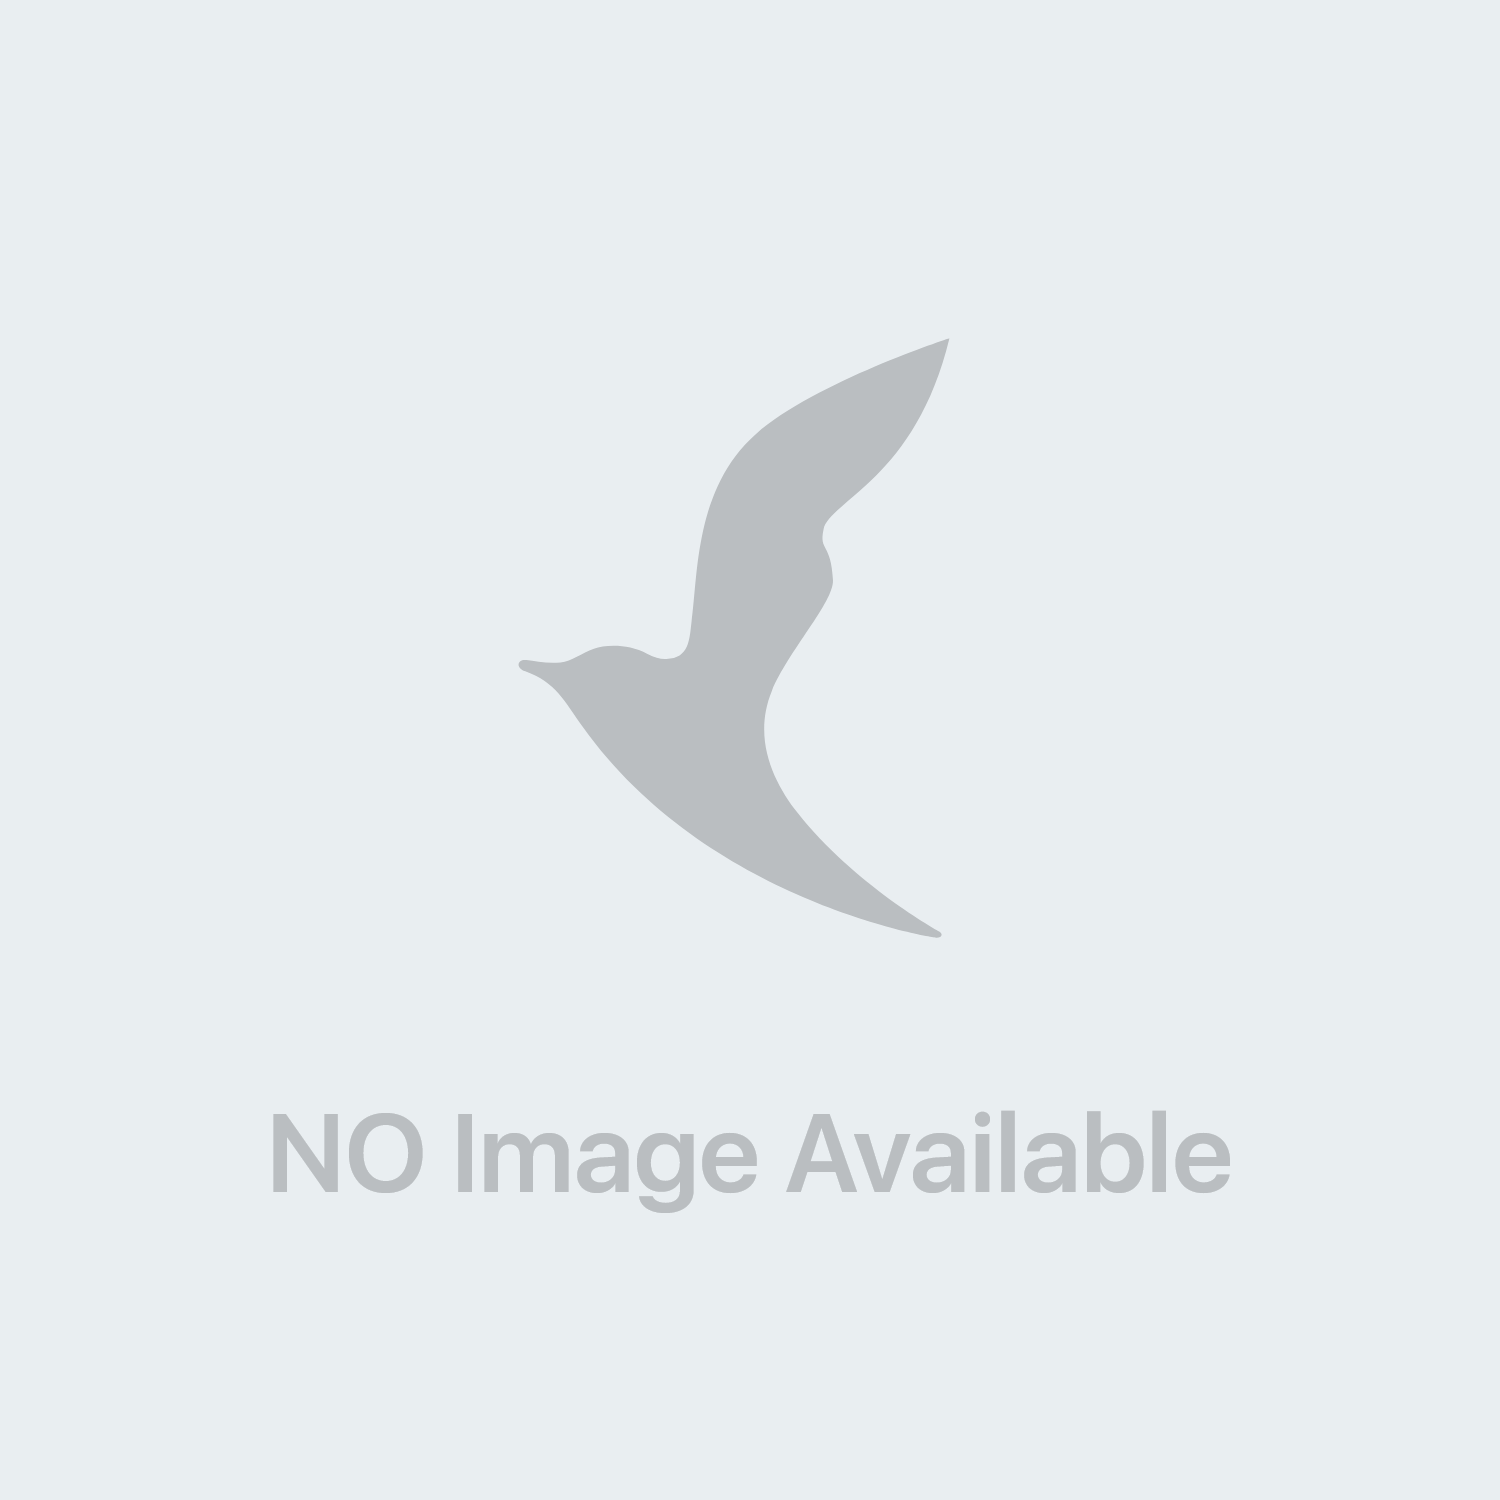 Effipro Spot-On Antiparassitario Cani Taglia Piccola 2-10 Kg 67 mg 4 Pipette